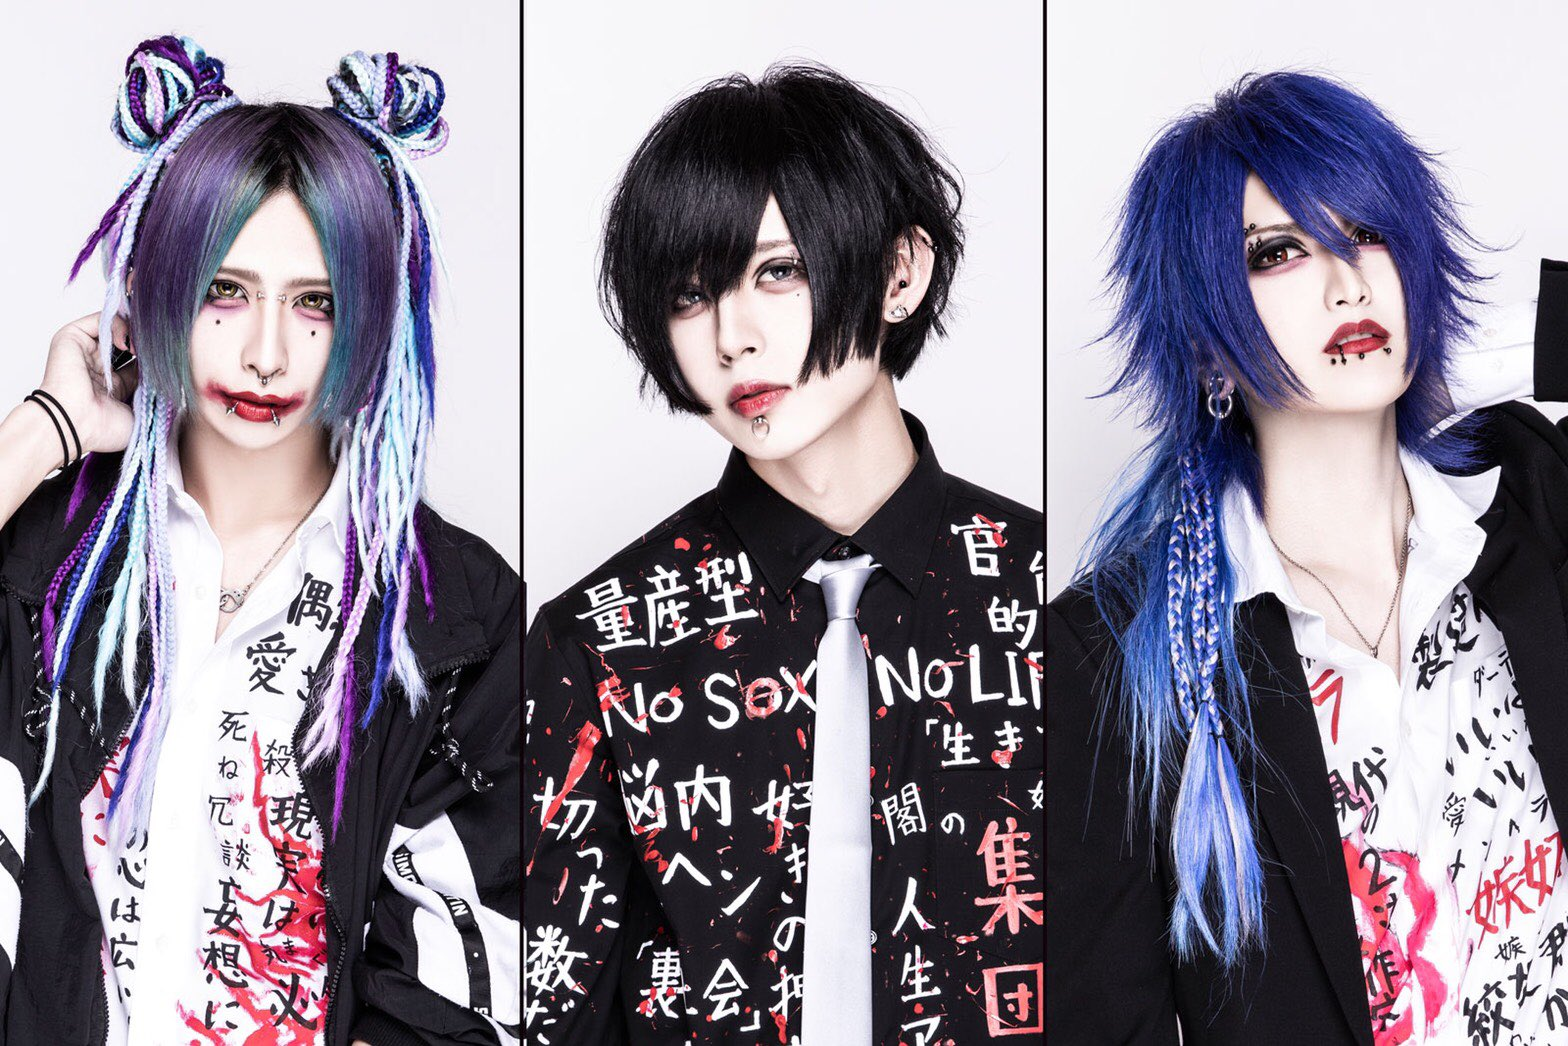 Arishi Hi no Uta – Nouveau look // New look